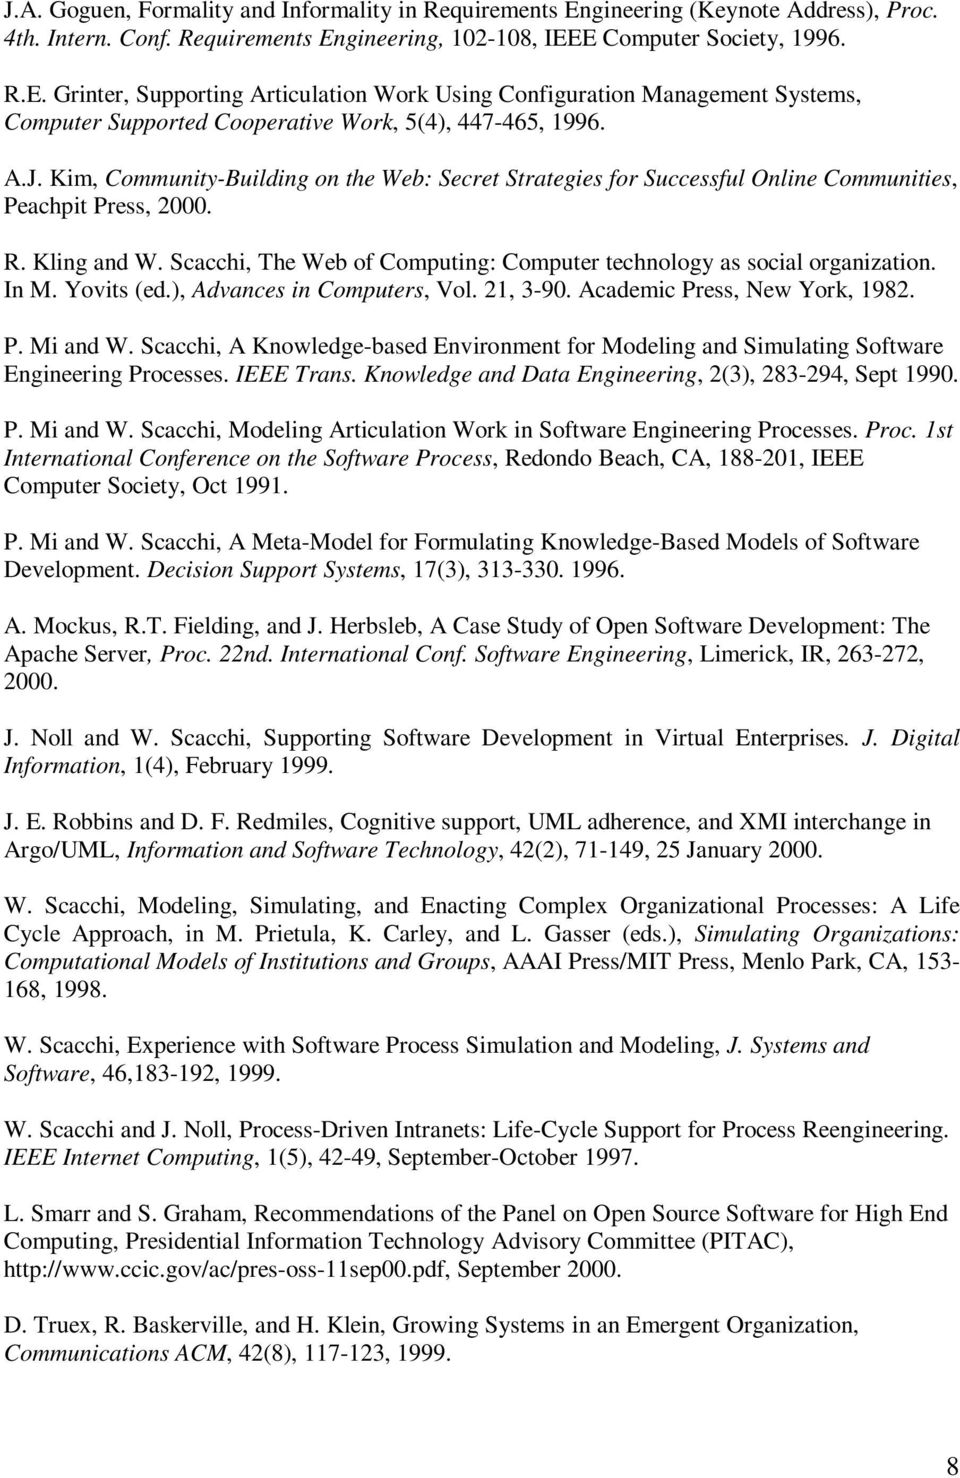 Scacchi, The Web of Computing: Computer technology as social organization. In M. Yovits (ed.), Advances in Computers, Vol. 21, 3-90. Academic Press, New York, 1982. P. Mi and W.